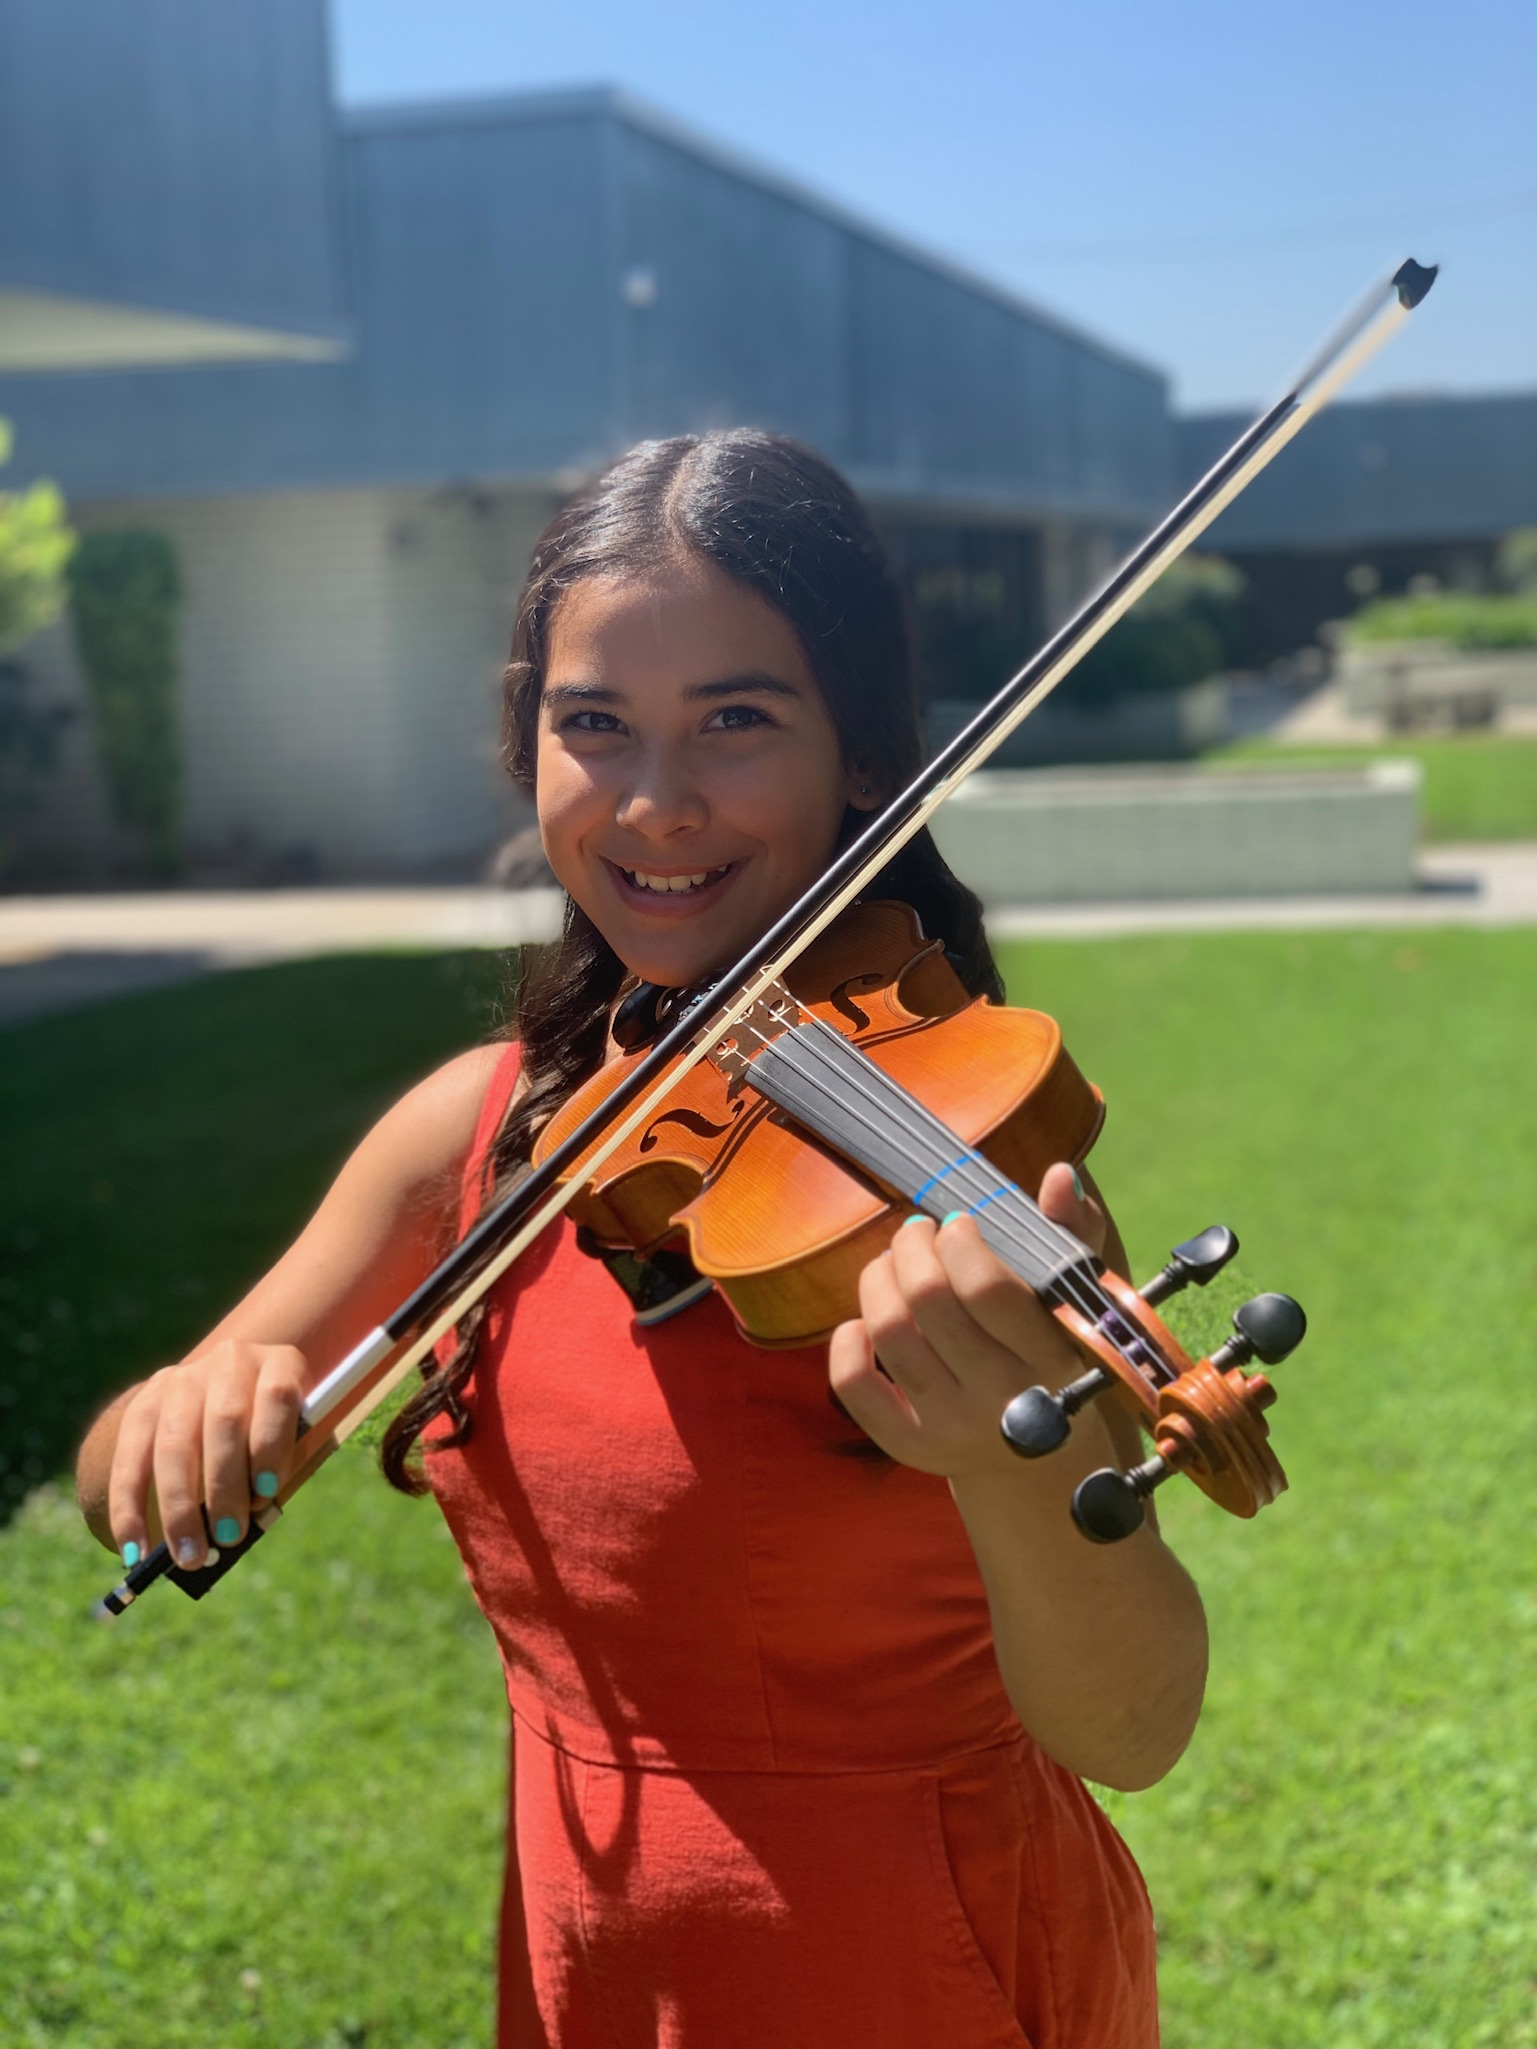 Take fun Violin lessons every week!